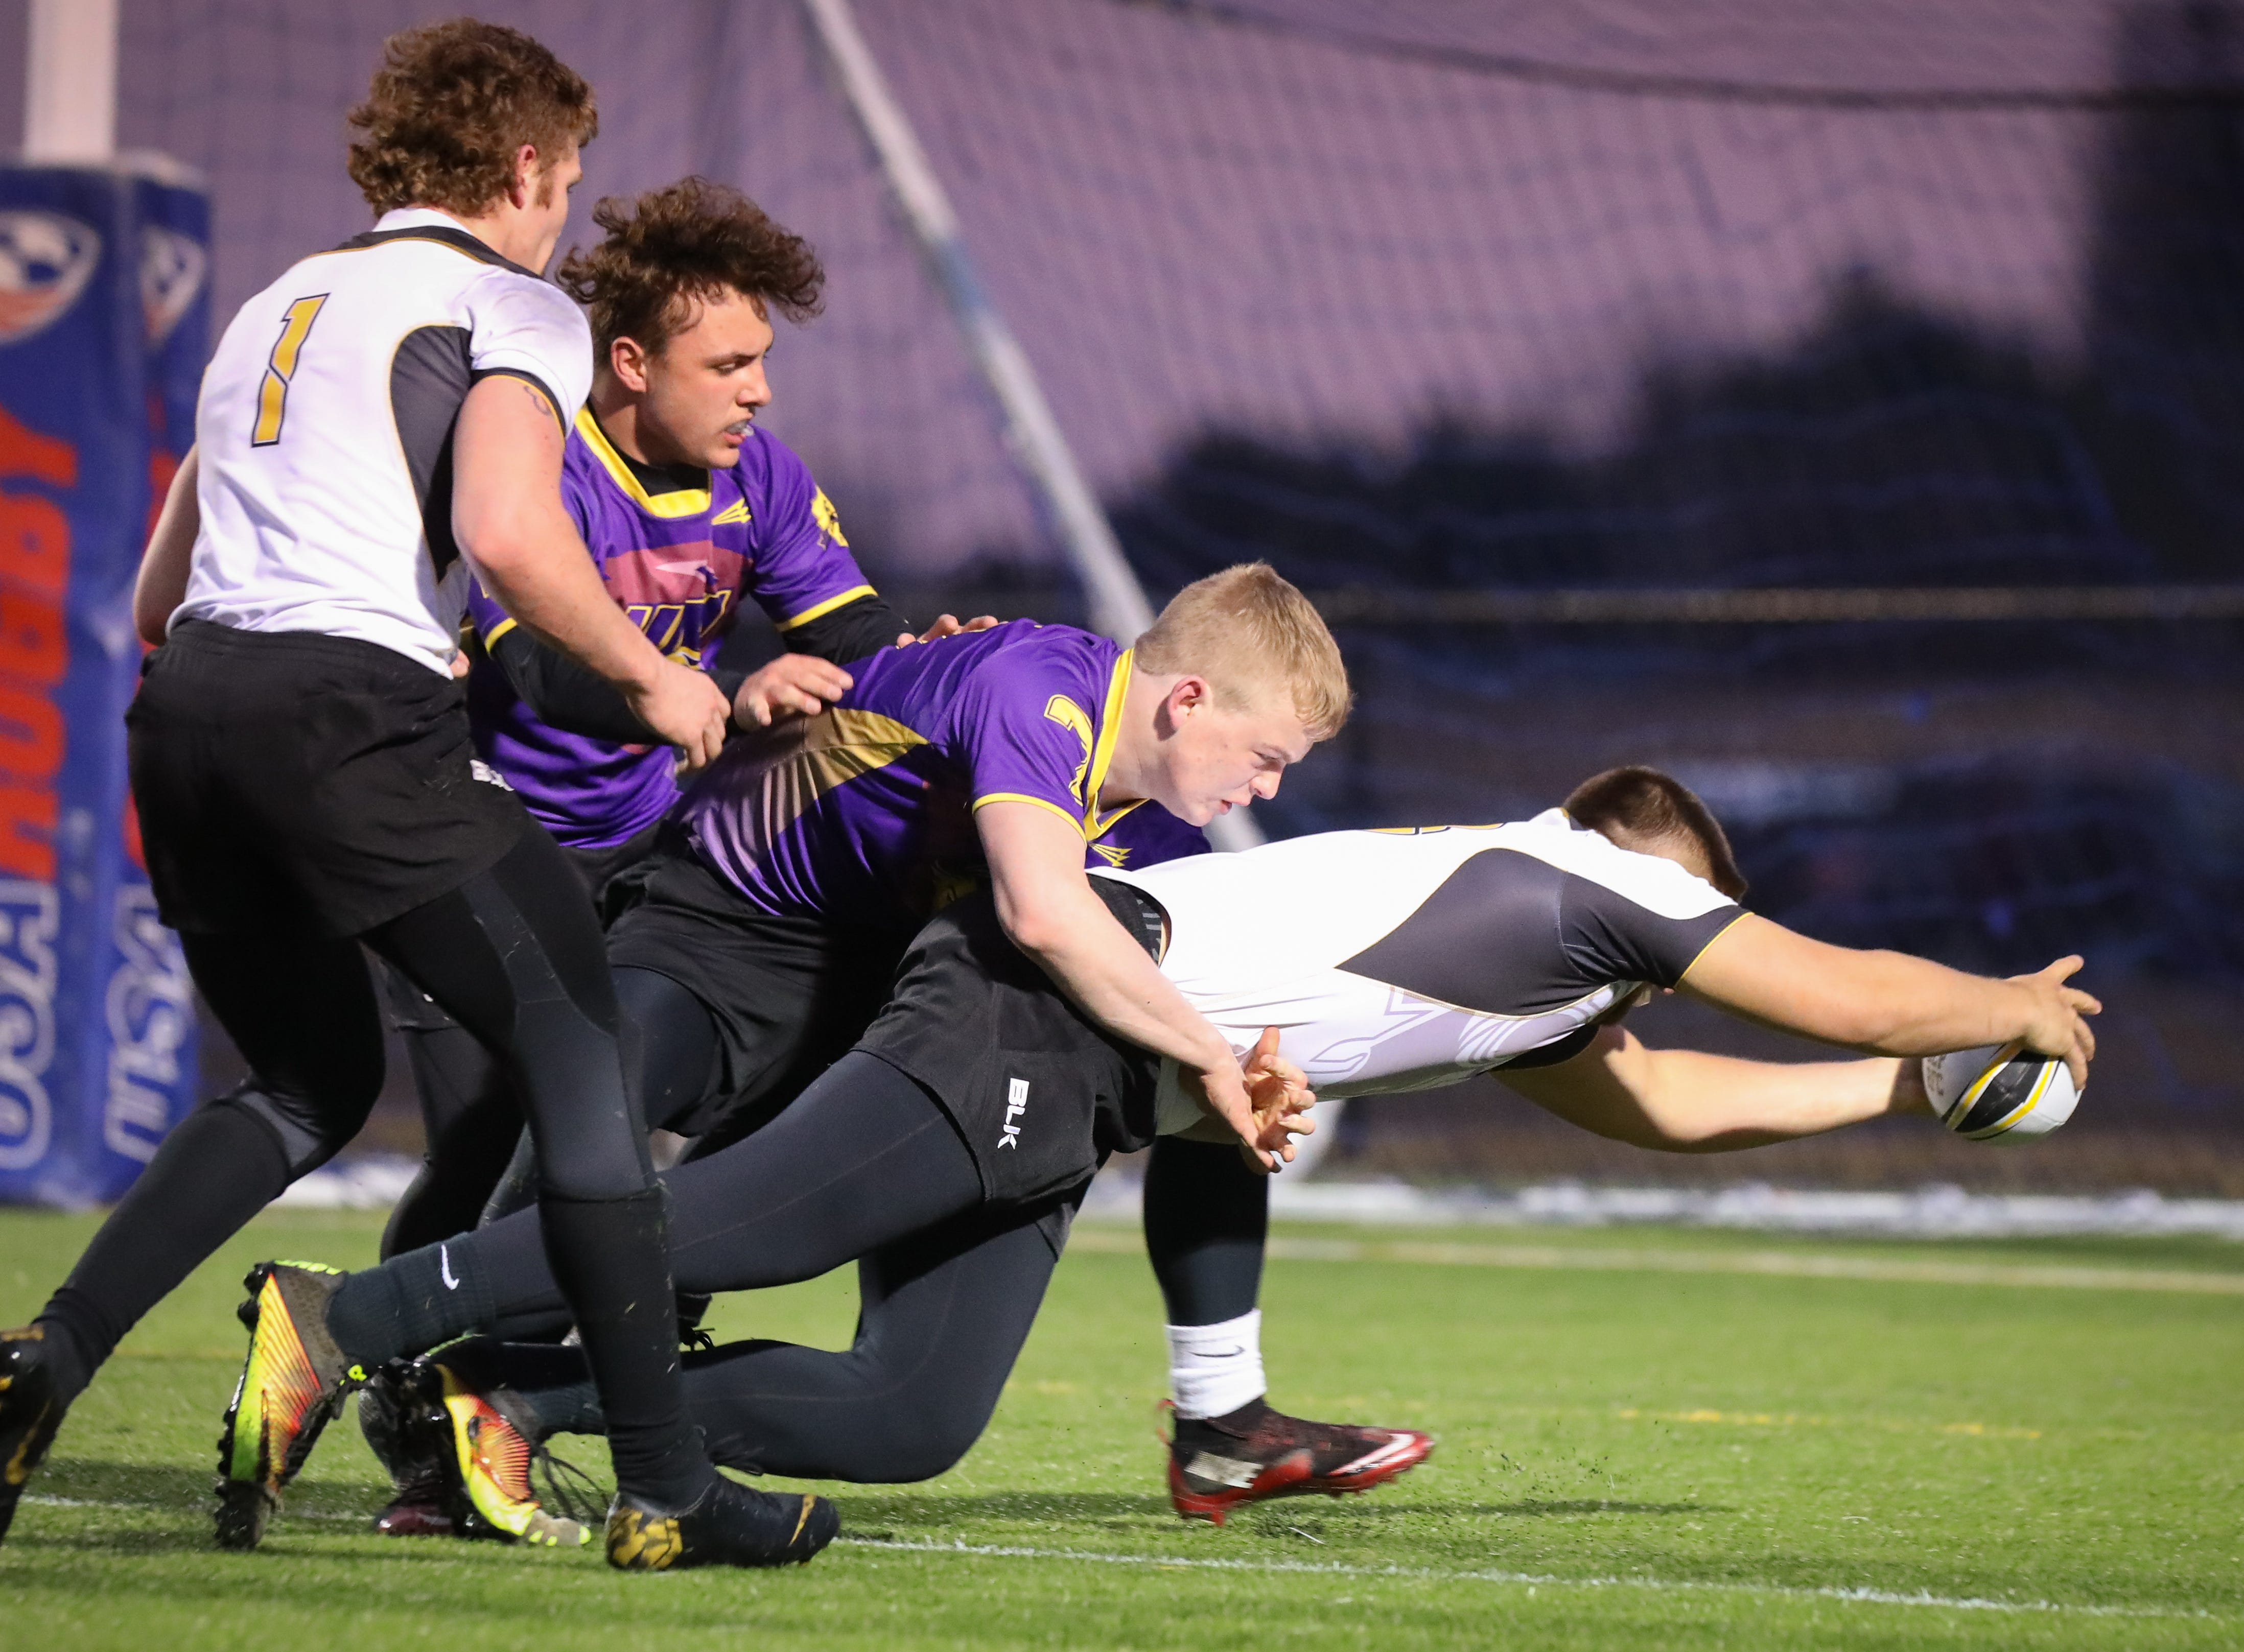 Southeast Polk (white shirts) and Fort Dodge (purple shirts) face off at a high school rugby match Friday, March 29, 2019 at Spring Creek Sports Complex in Altoona, Iowa. Southeast Polk won their 100th game.